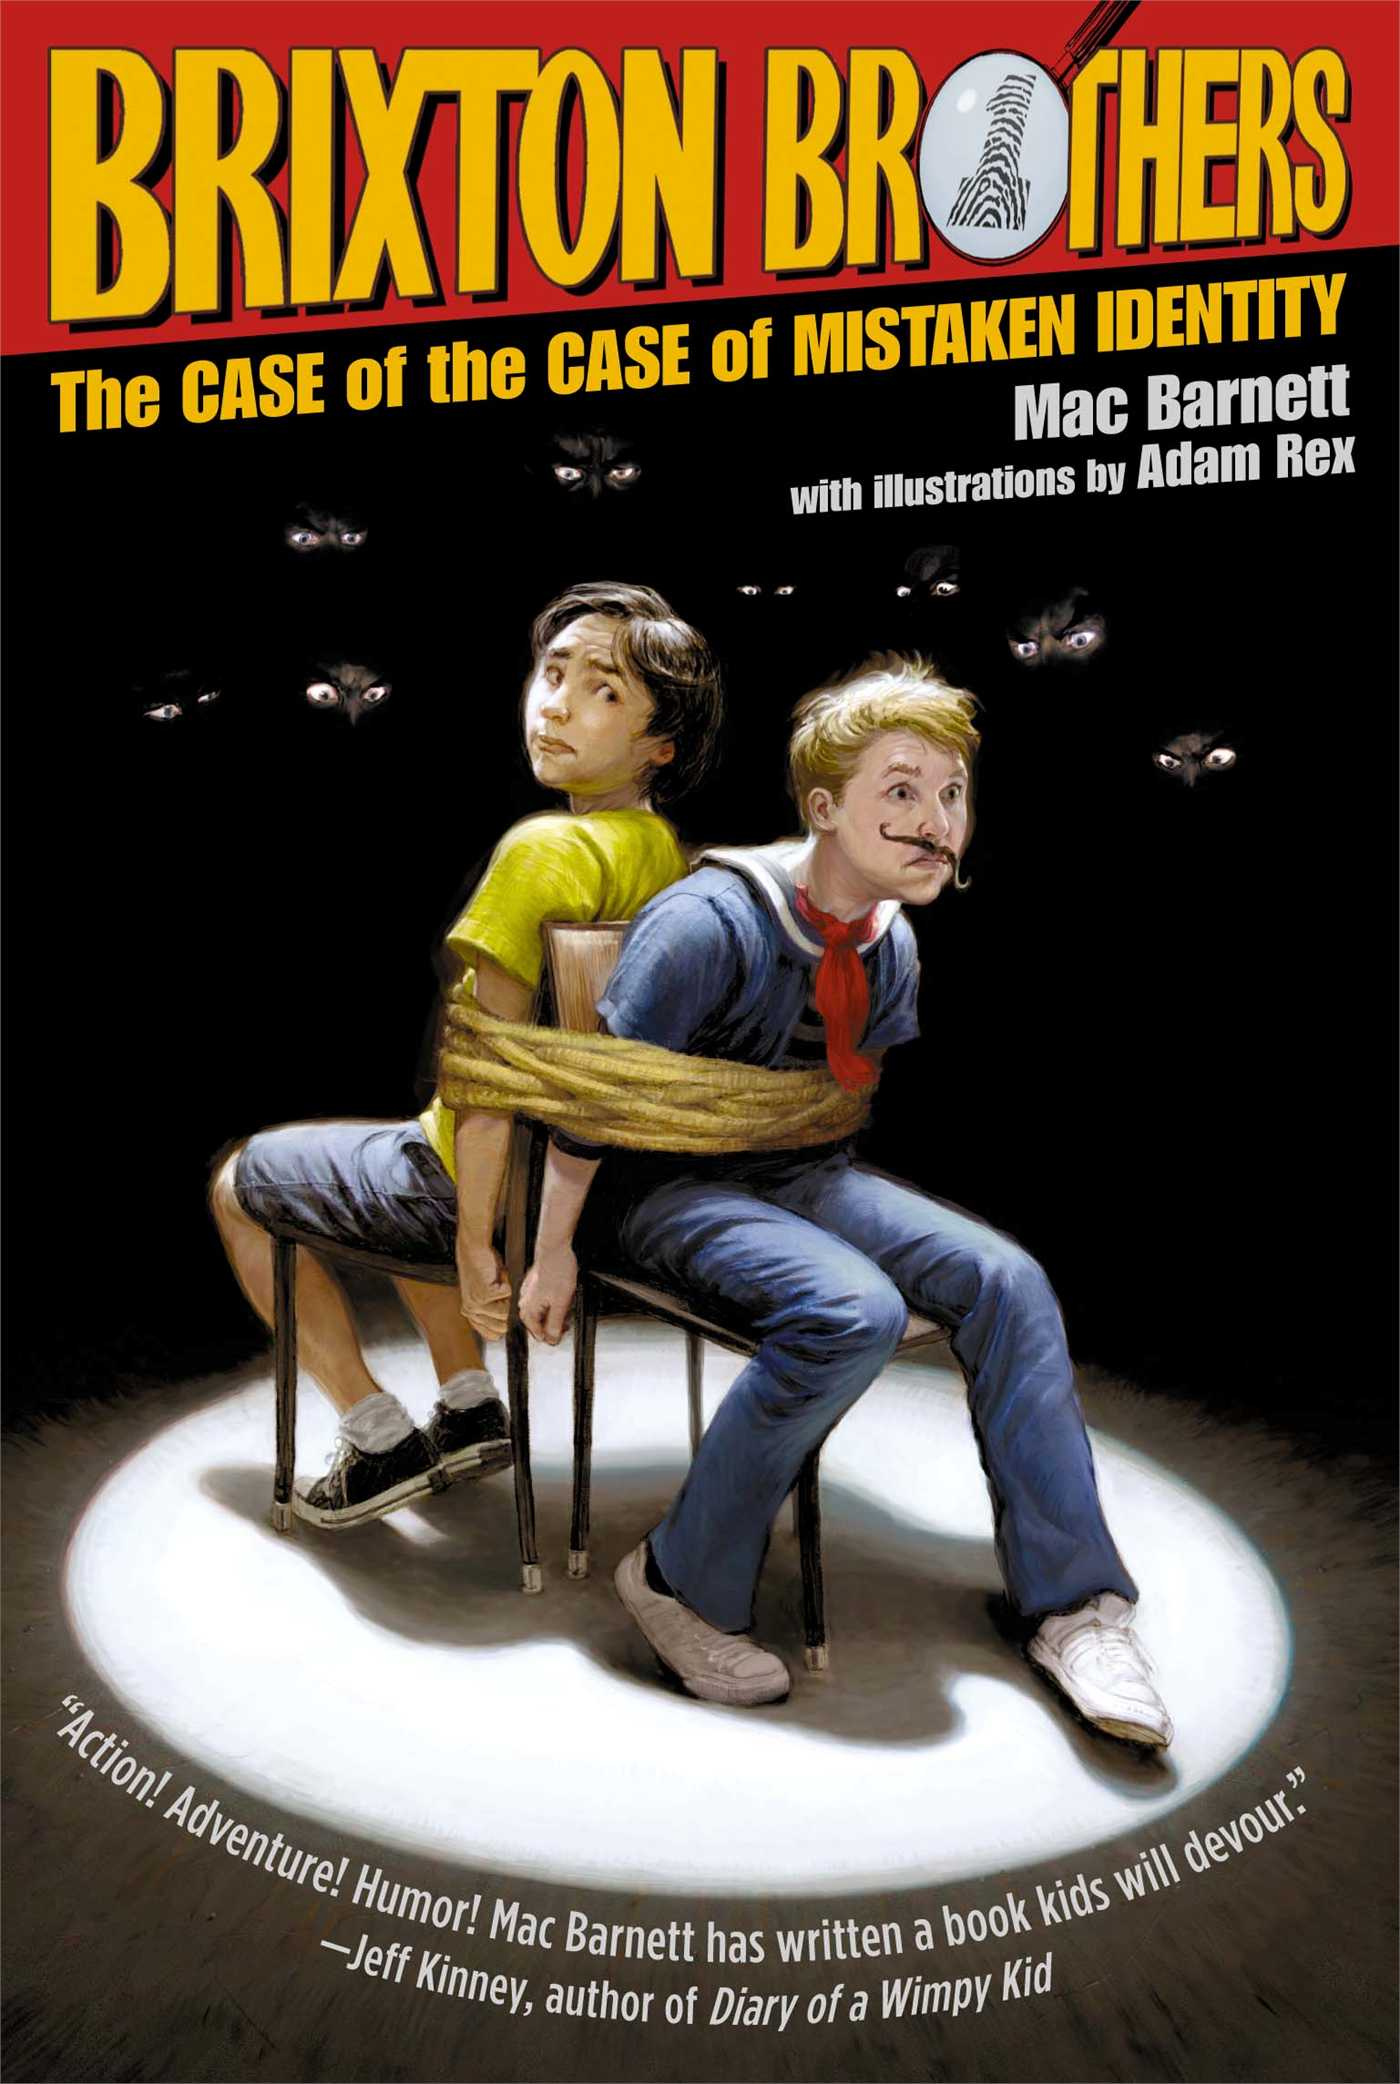 eyewitnesses and the case of mistaken identity The case of the case of mistaken identity, brixton brothers mistaken for a real private to solve this crazy caper of the case of the case of mistaken identity.